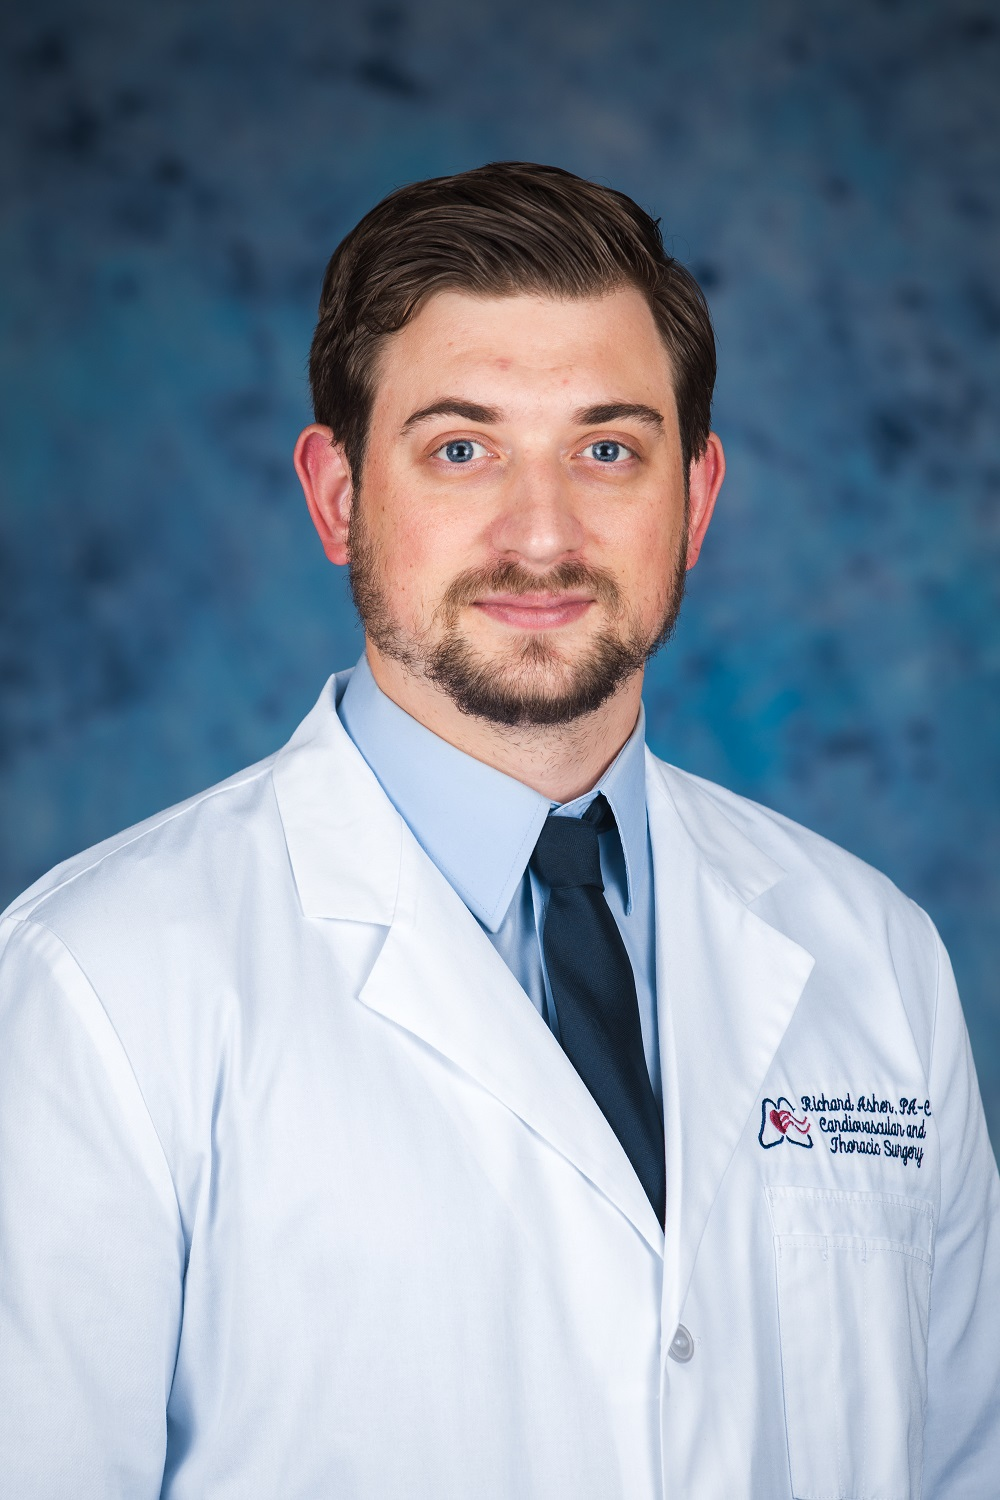 Richard Asher, PA-C of East Tennessee Cardiovascular Surgery Group